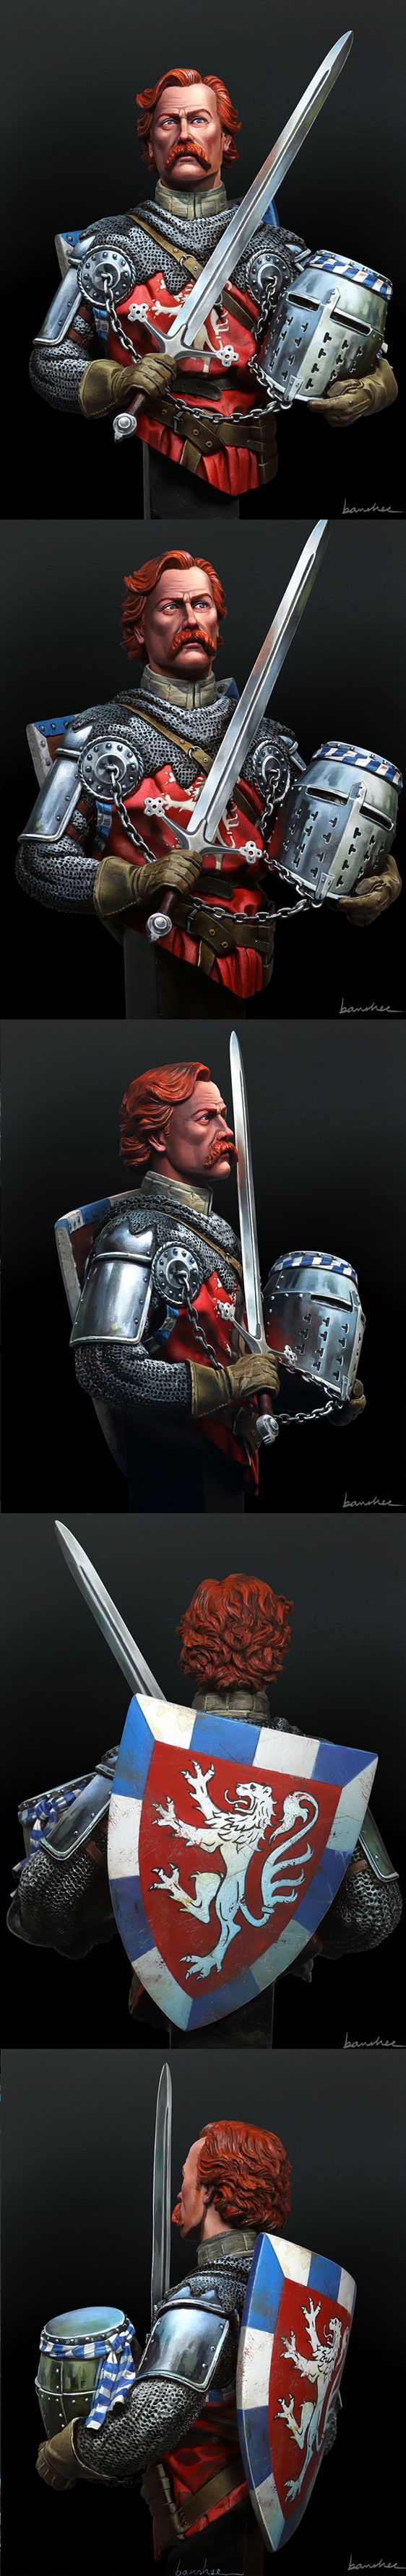 WILLIAM WALLACE_BoxArt for Fer Miniatures